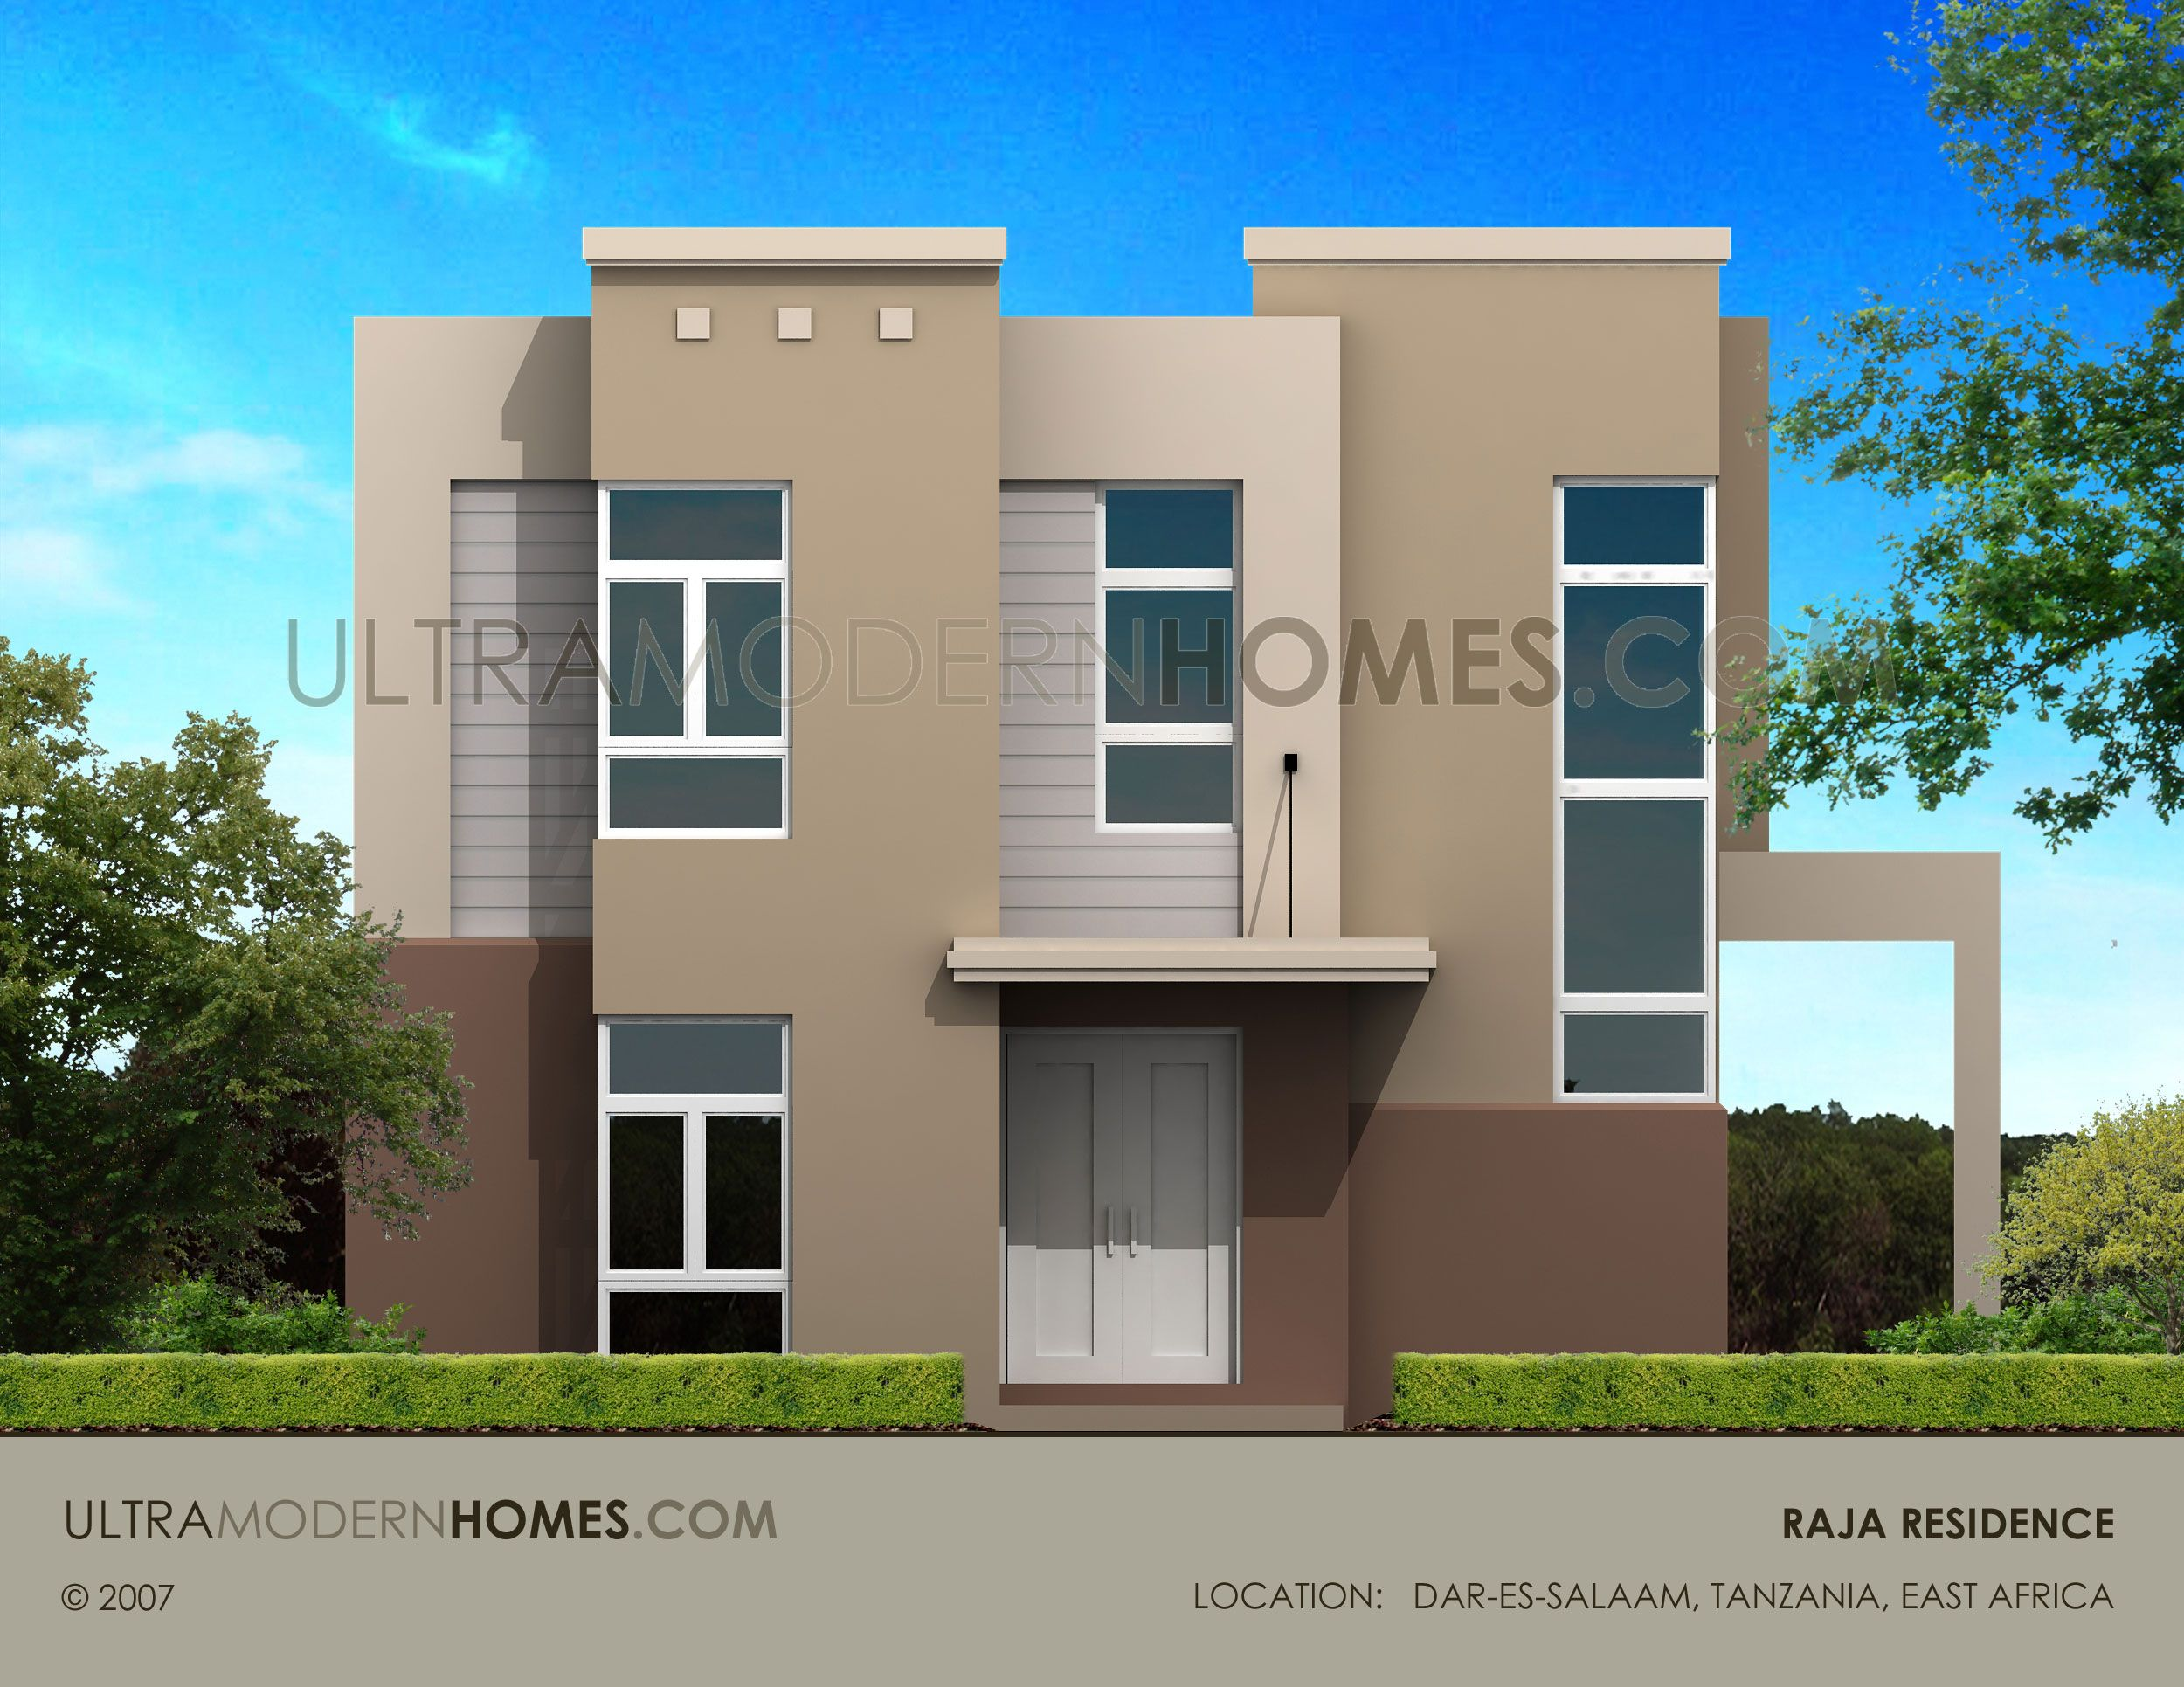 Contemporary home plan in dar es salaam tanzania africa designed by residential architect cynthia leif visit her website at ultramodernhomes com